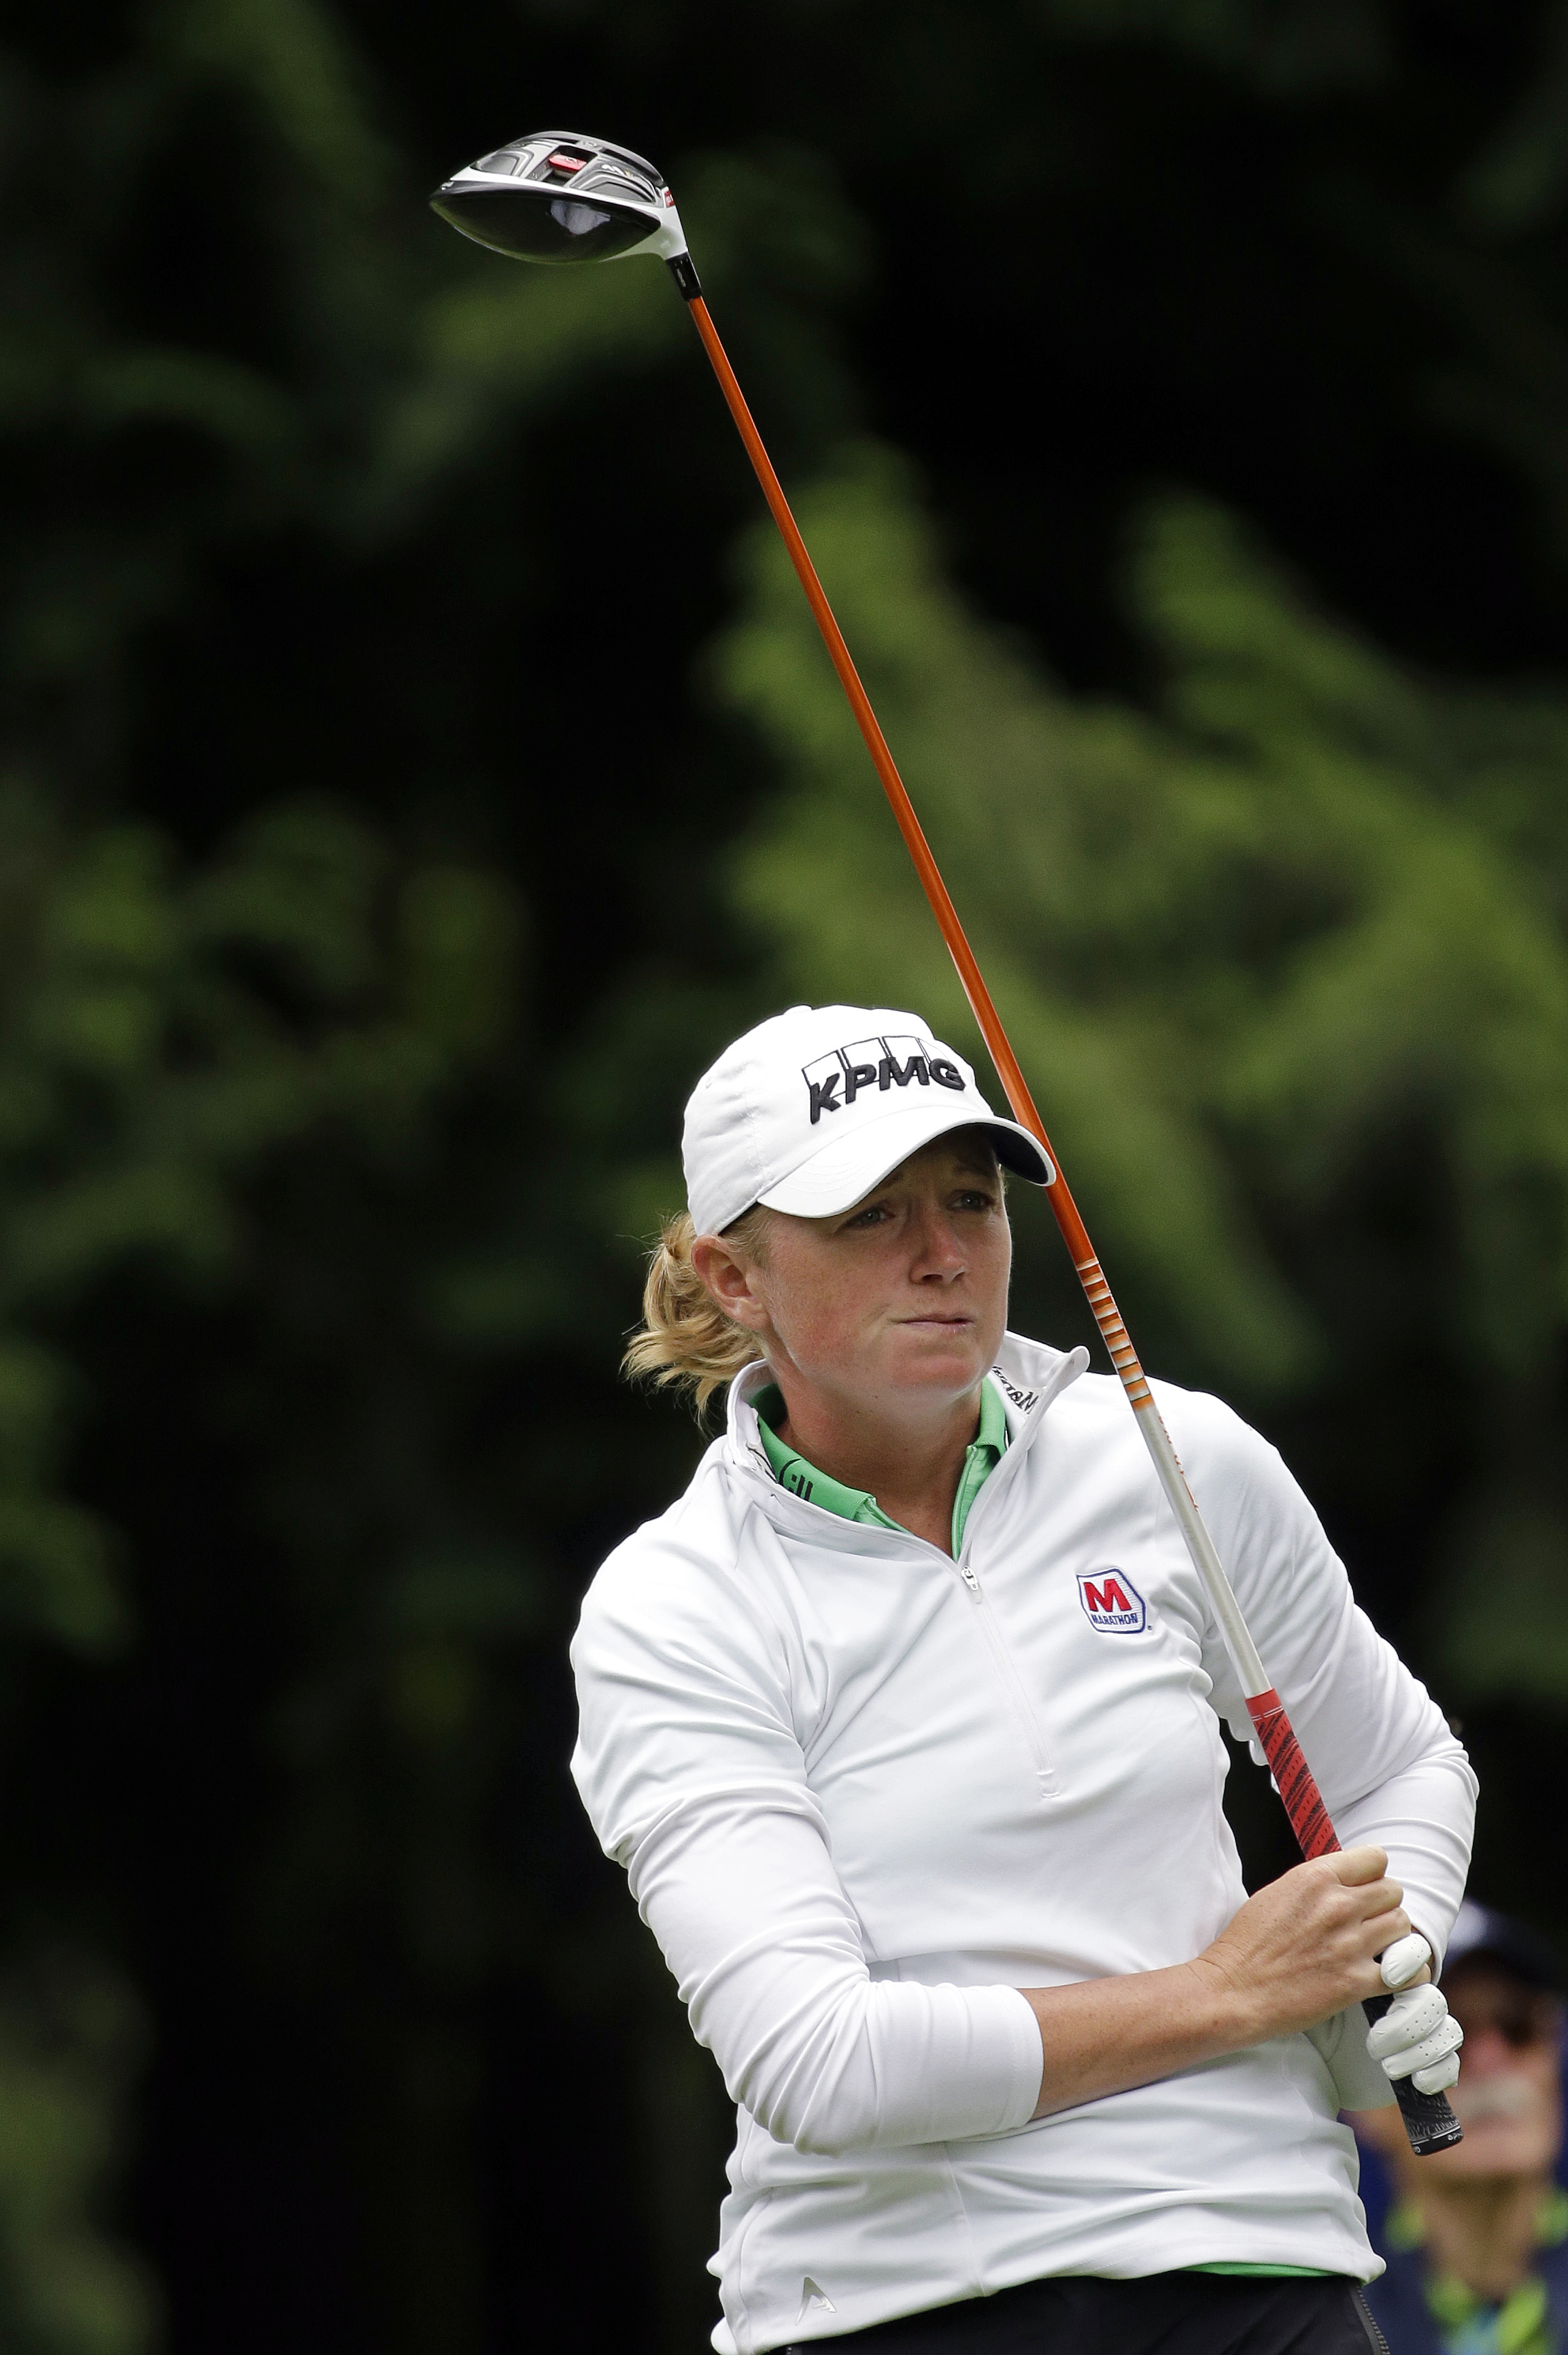 Stacy Lewis watches her tee shot in the first round at the Women's PGA Championship golf tournament at Sahalee Country Club Thursday, June 9, 2016, in Sammamish, Wash. (AP Photo/Elaine Thompson)